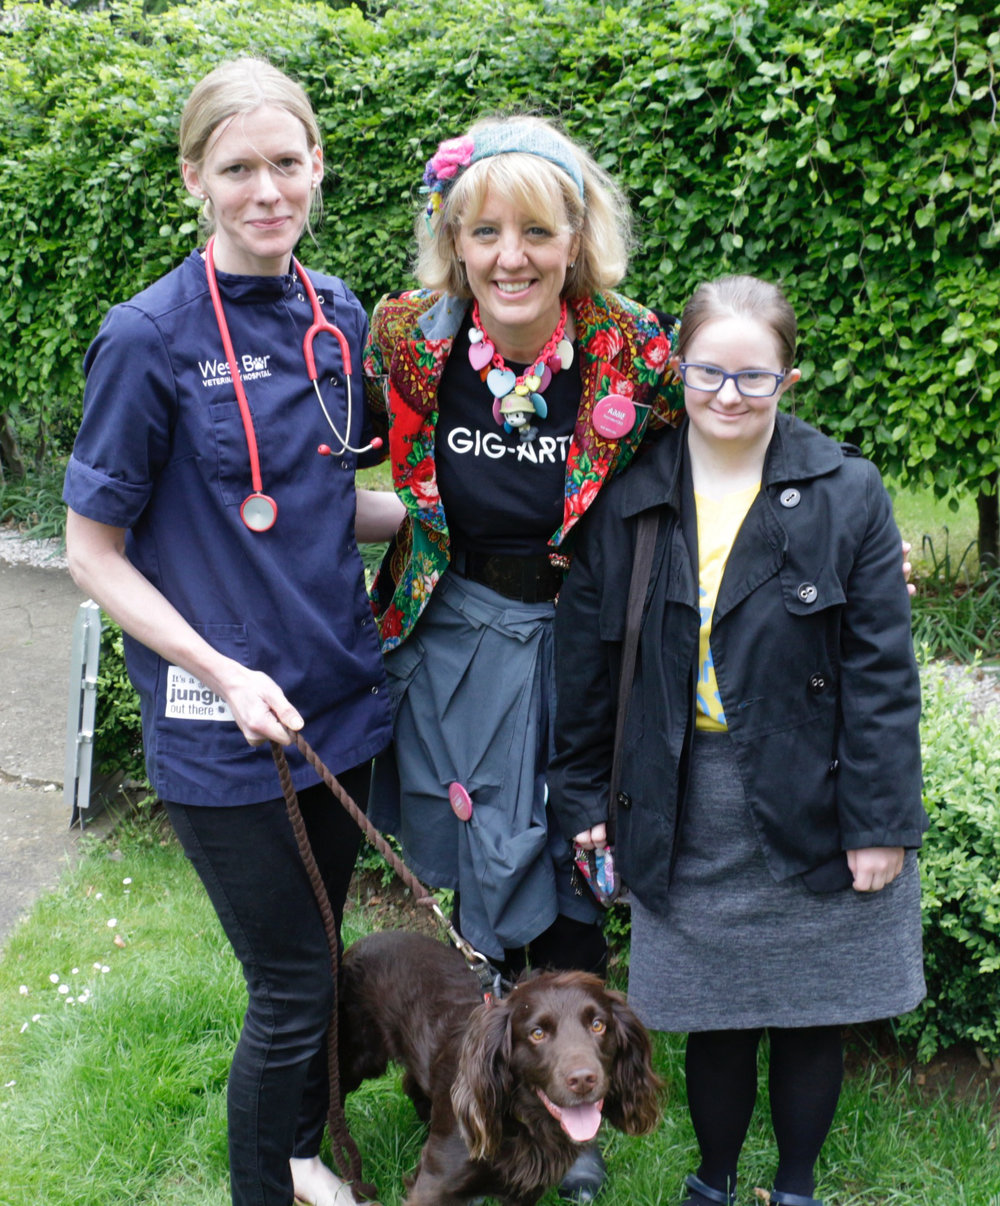 Meeting the veterinary surgeon and her dog at West Bar Vets